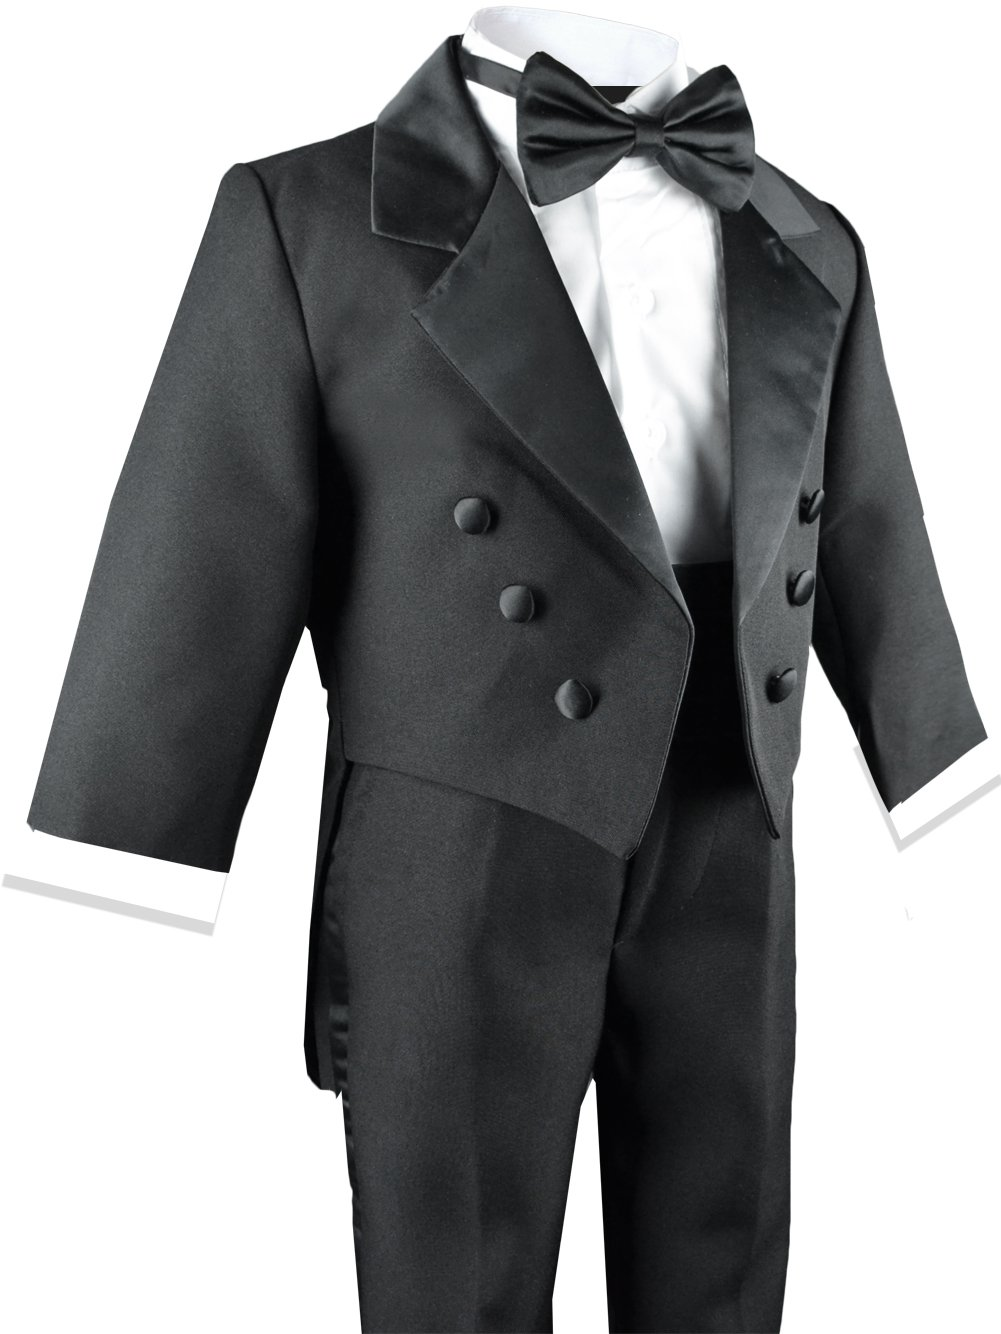 Boys Black Tuxedo with Tail Outfit Set Size 8